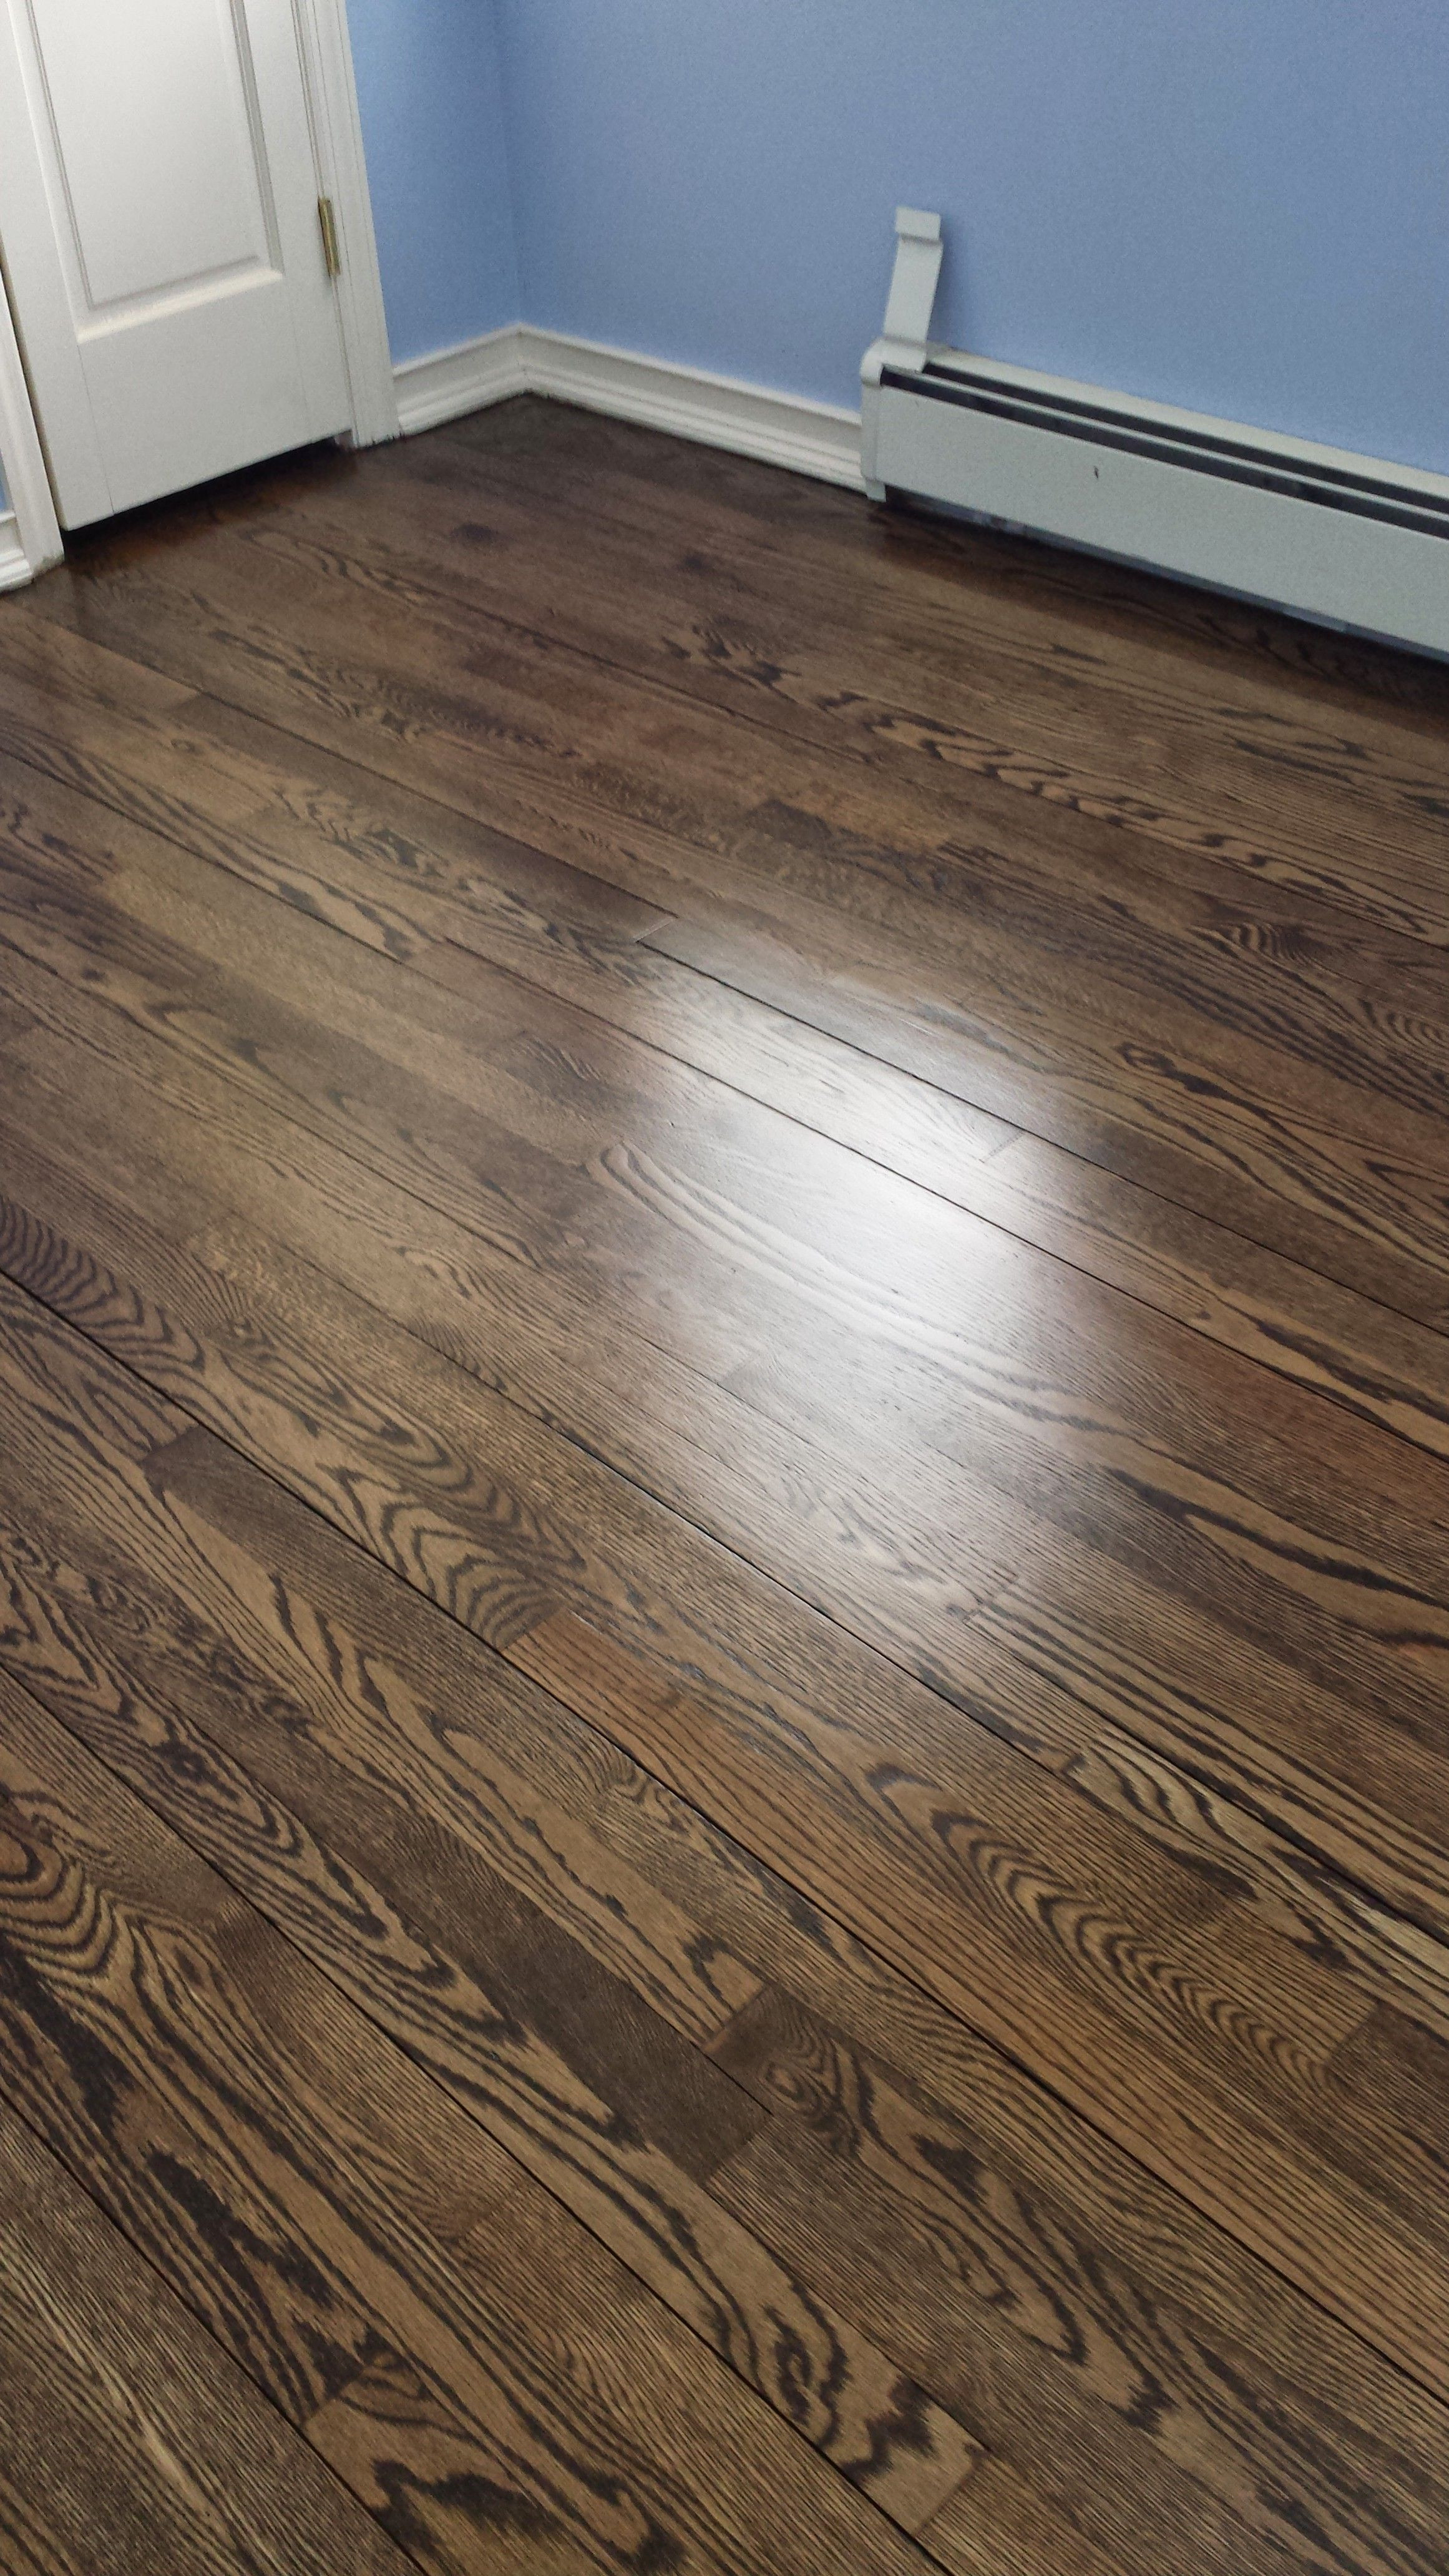 how to install prefinished hardwood floors yourself of how to install wood floors the pros and cons of prefinished hardwood for gallery of how to install wood floors the pros and cons of prefinished hardwood flooring